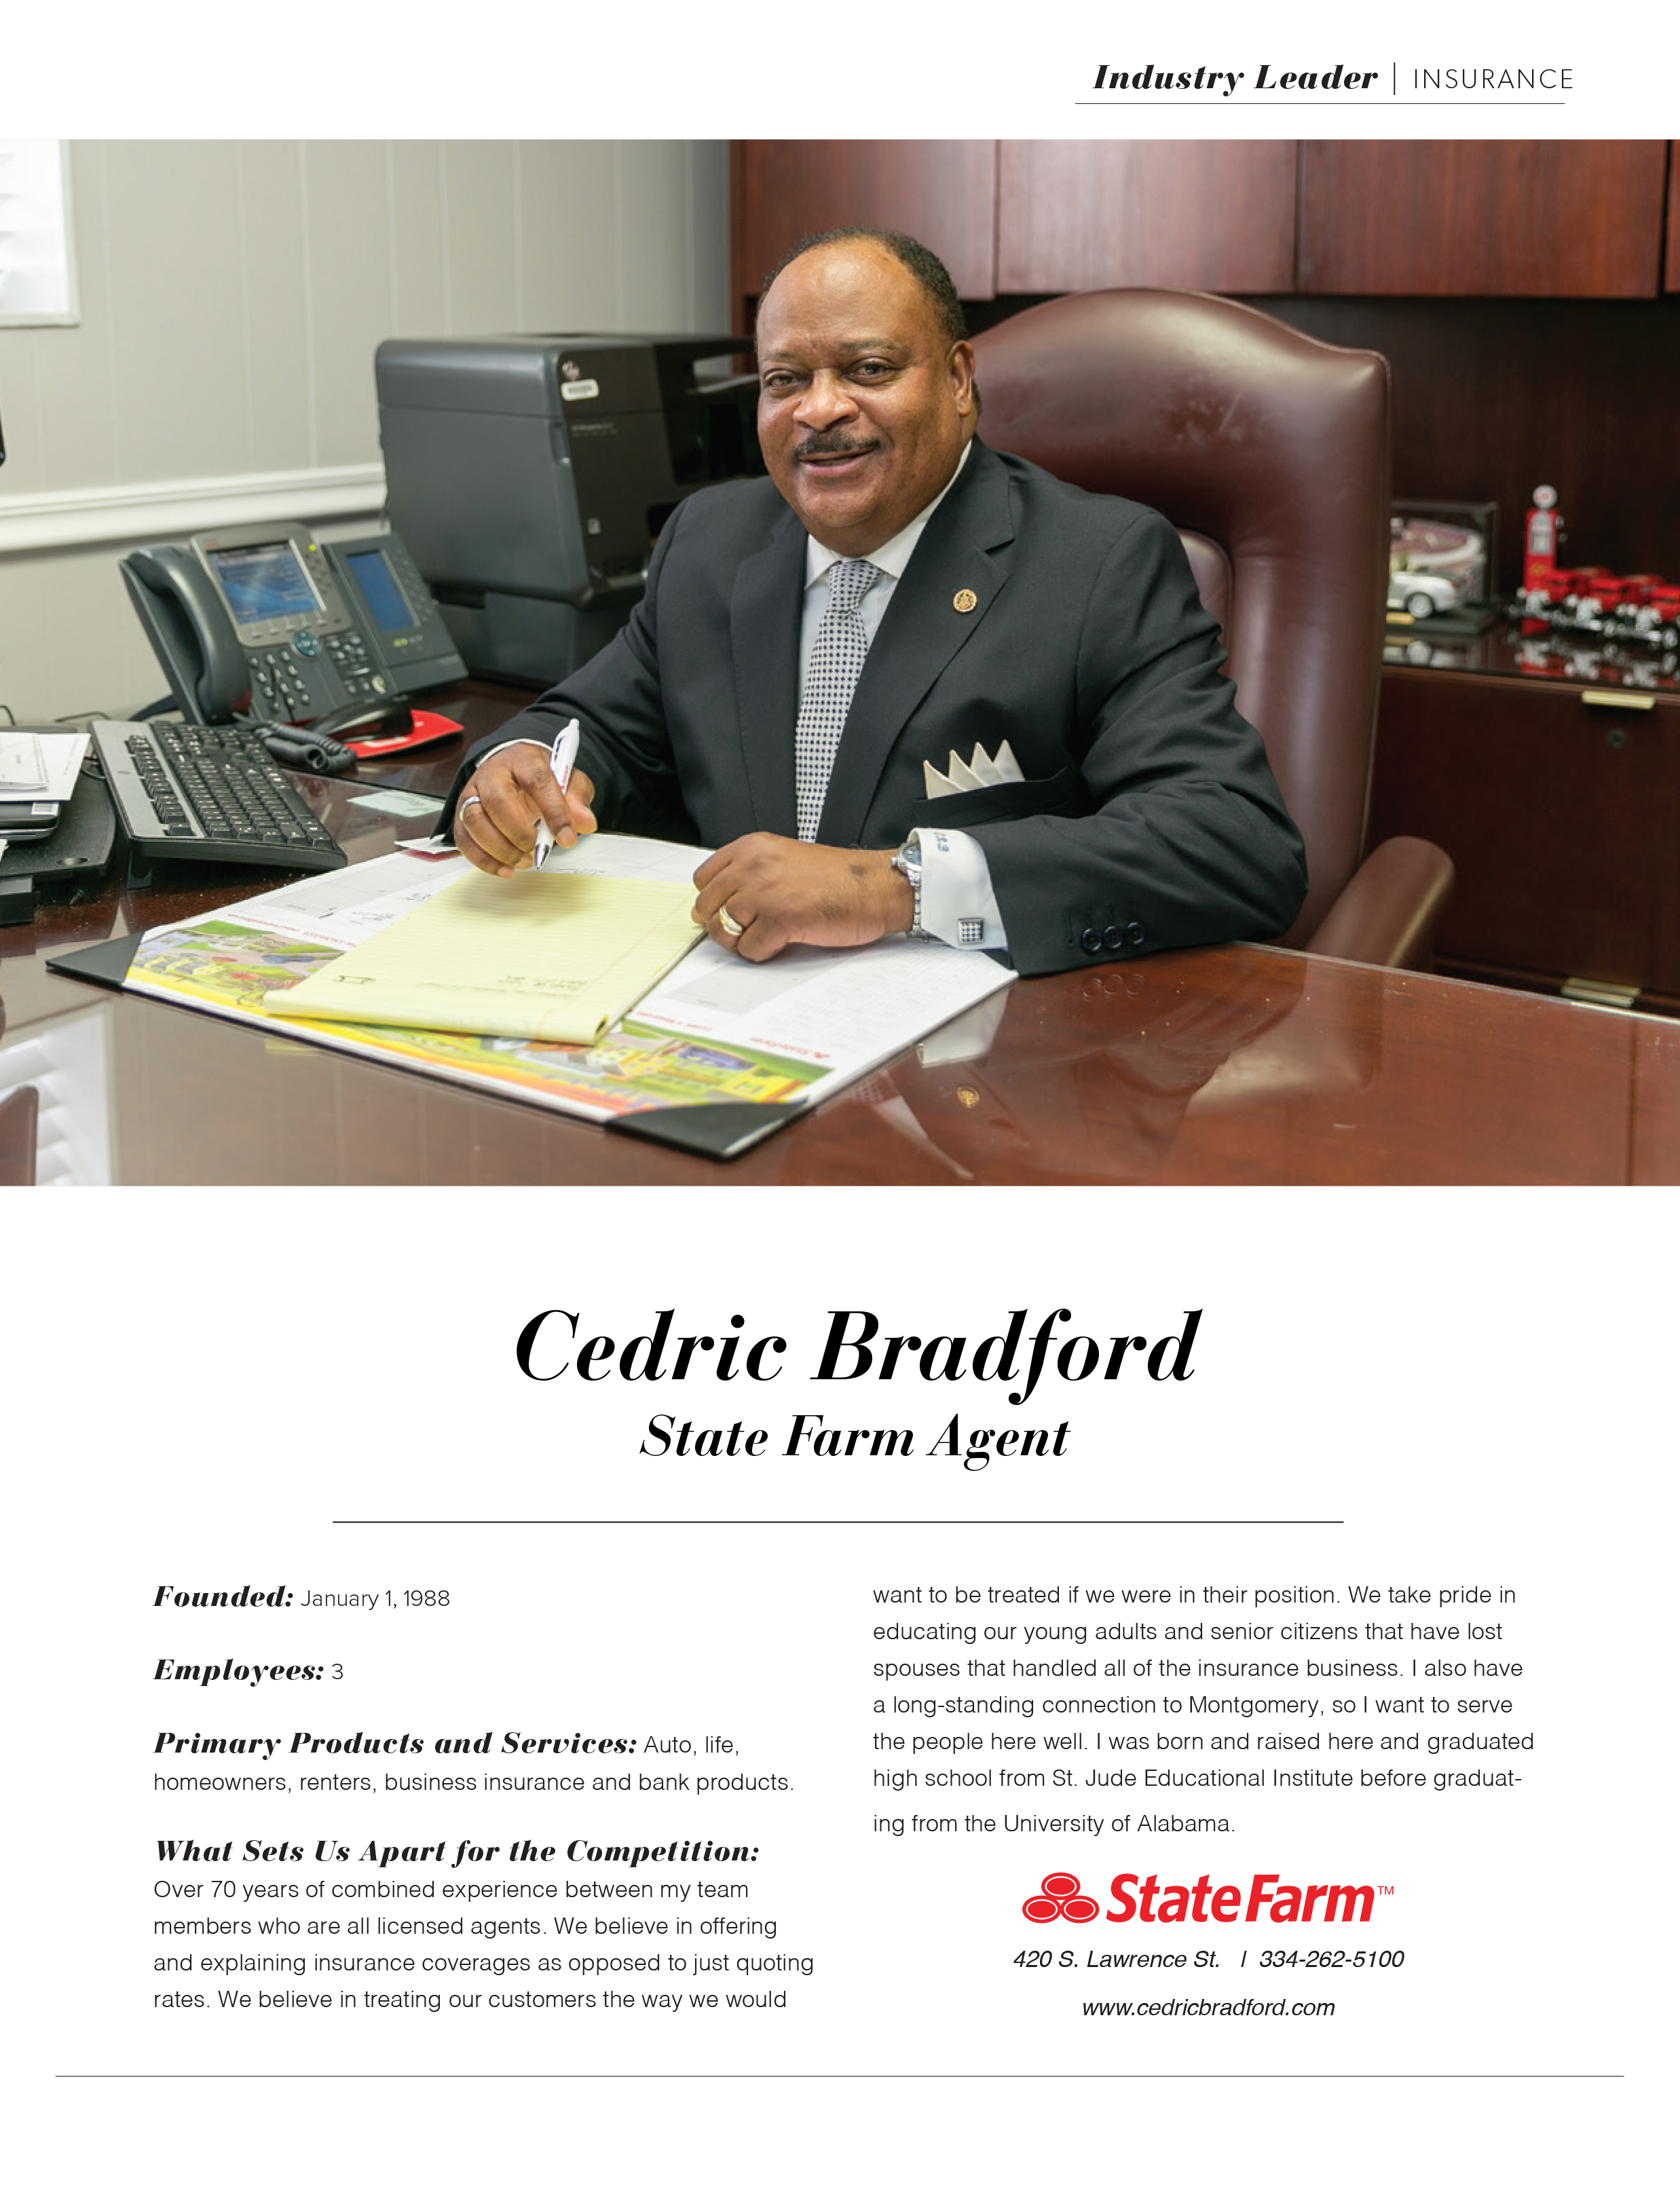 Industry Leader, Cedric Bradford, State Farm, MBJ. Montgomery Business Journal, Montgomery Chamber of Commerce